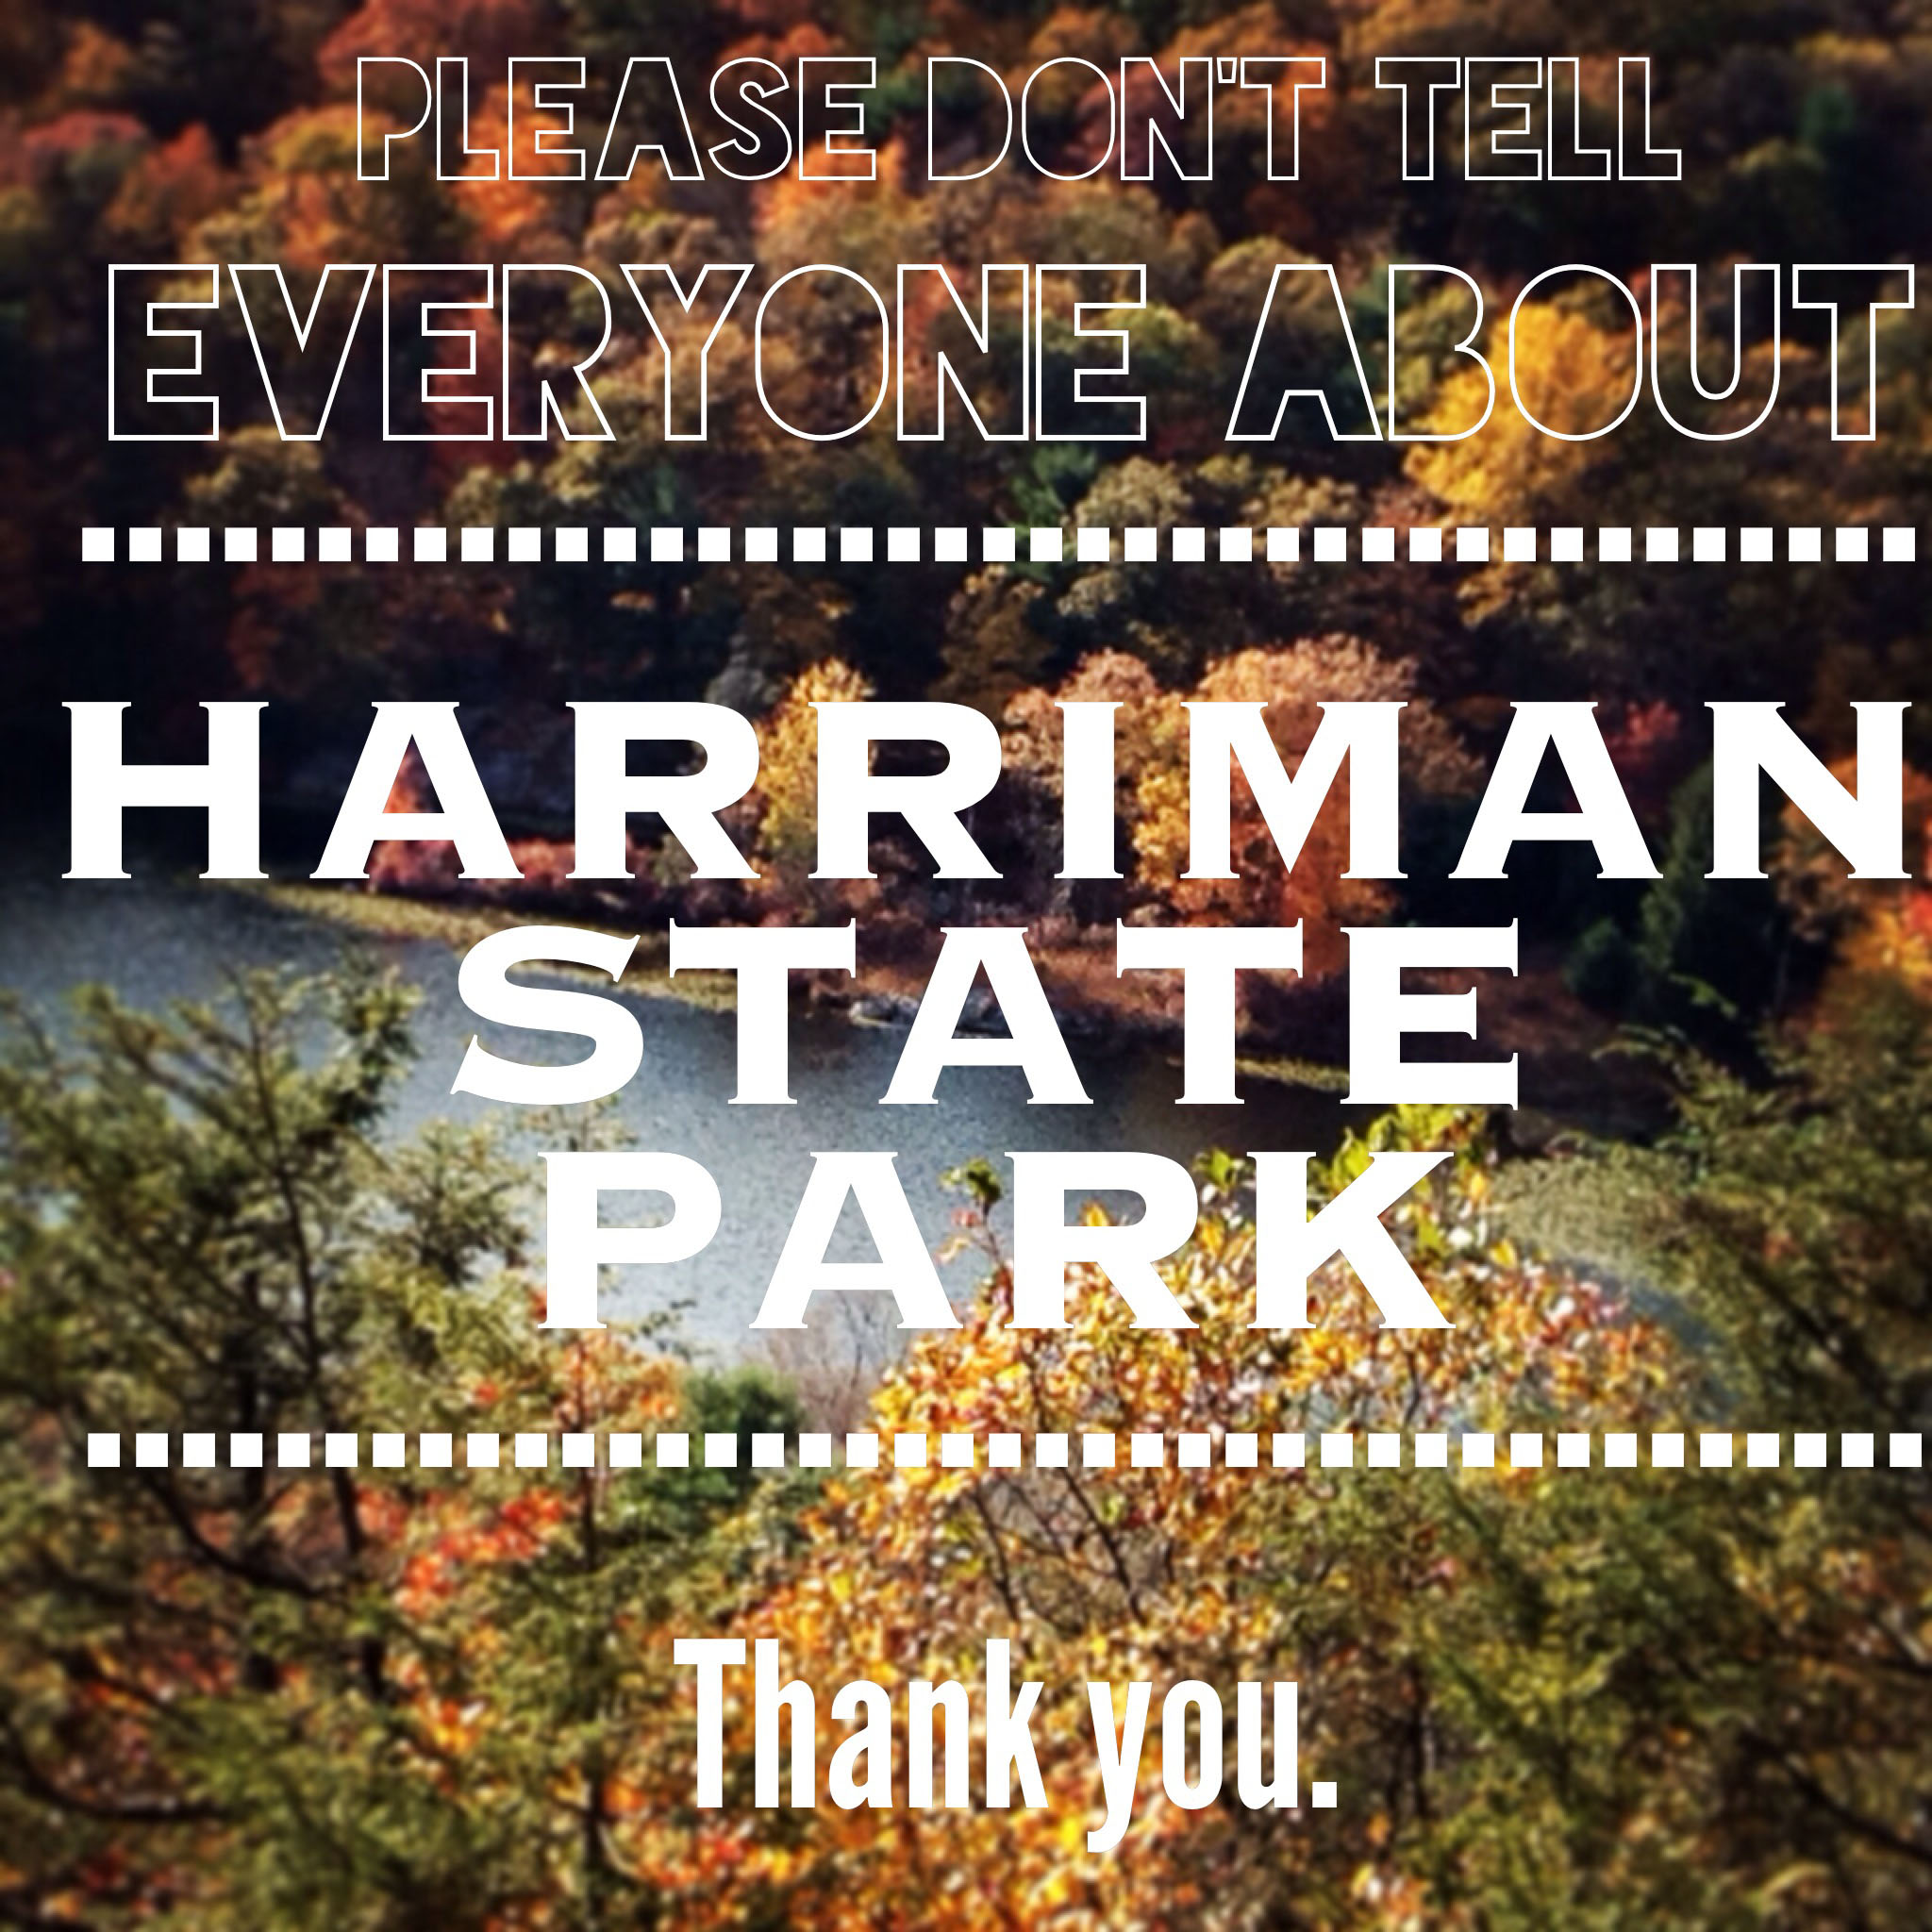 A sign for Harriman State Park